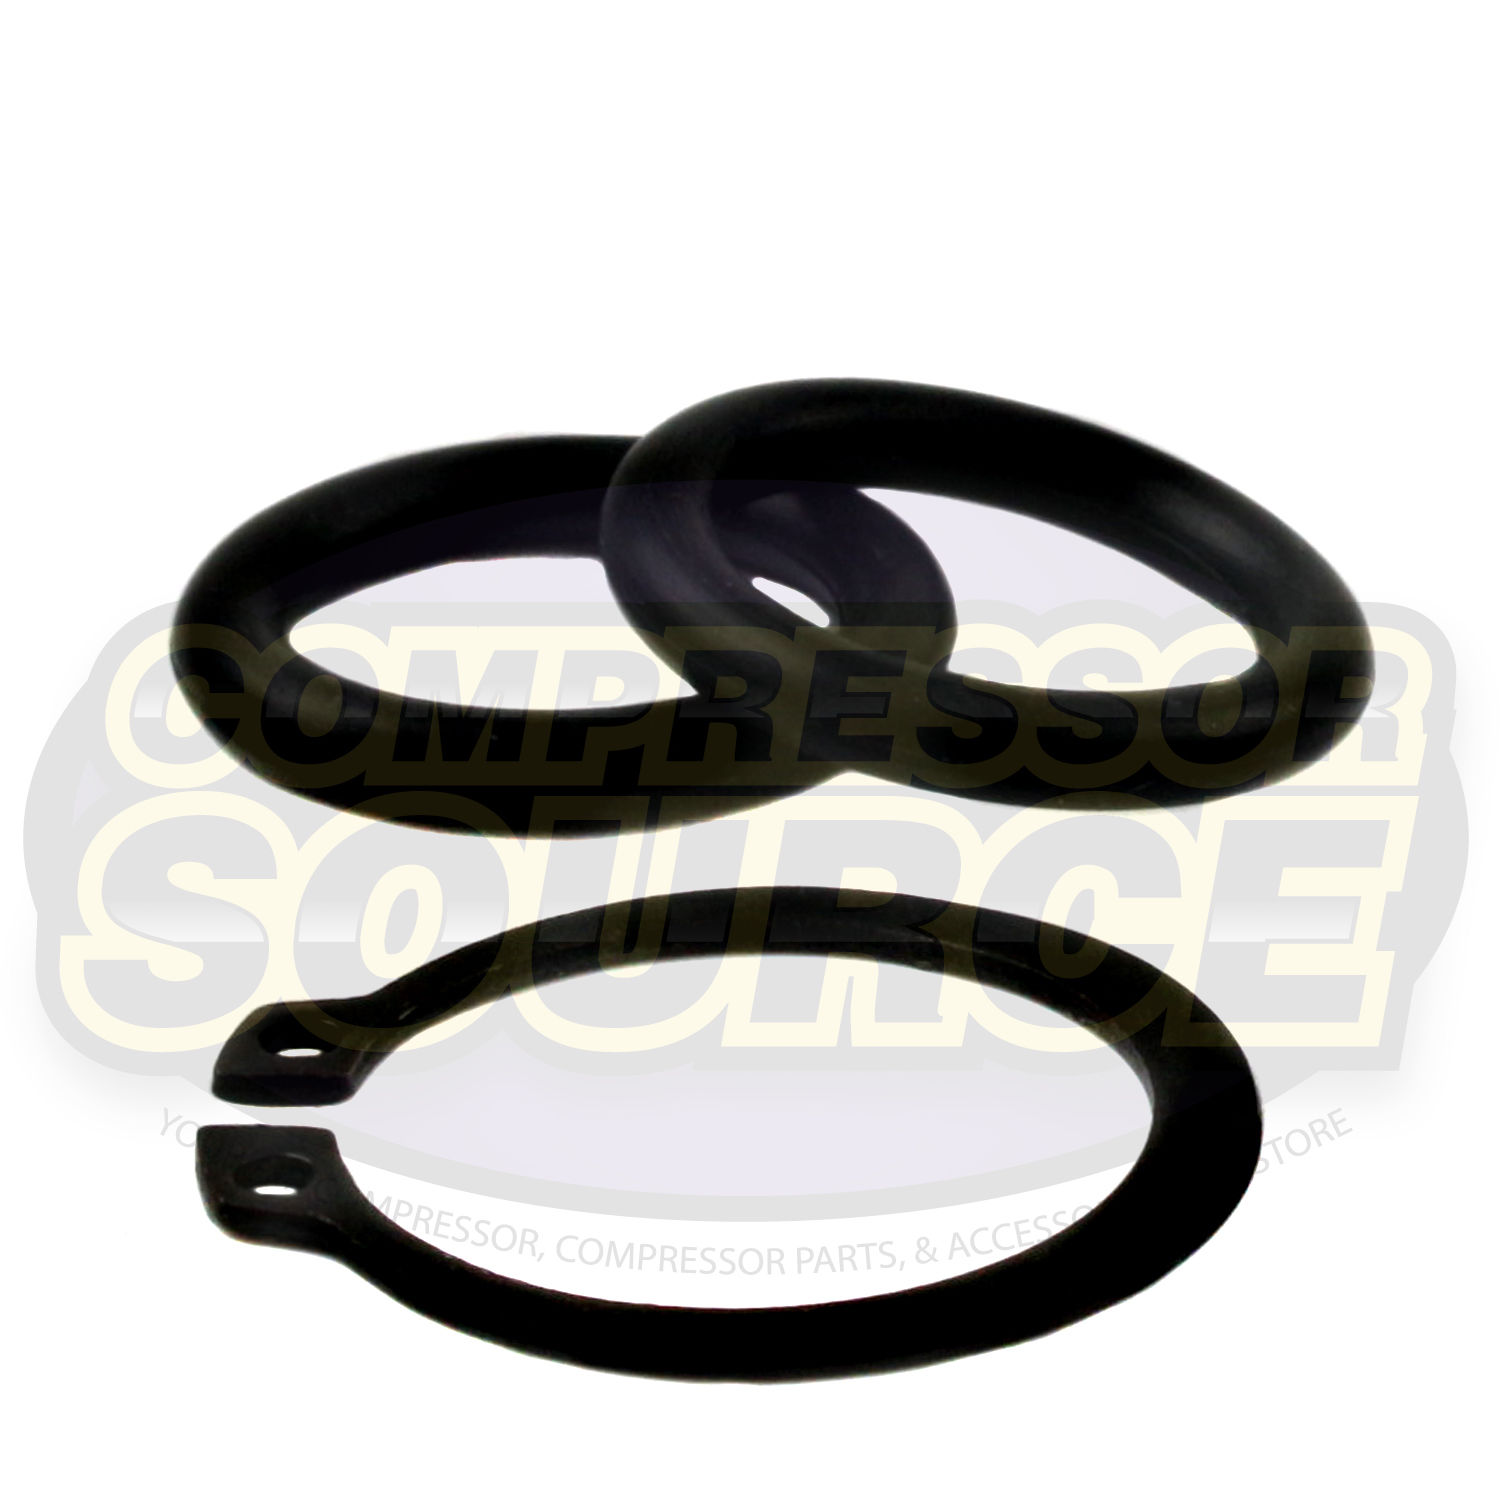 New Goodyear 3 8 Swivel O Ring Seal Replacement 99043